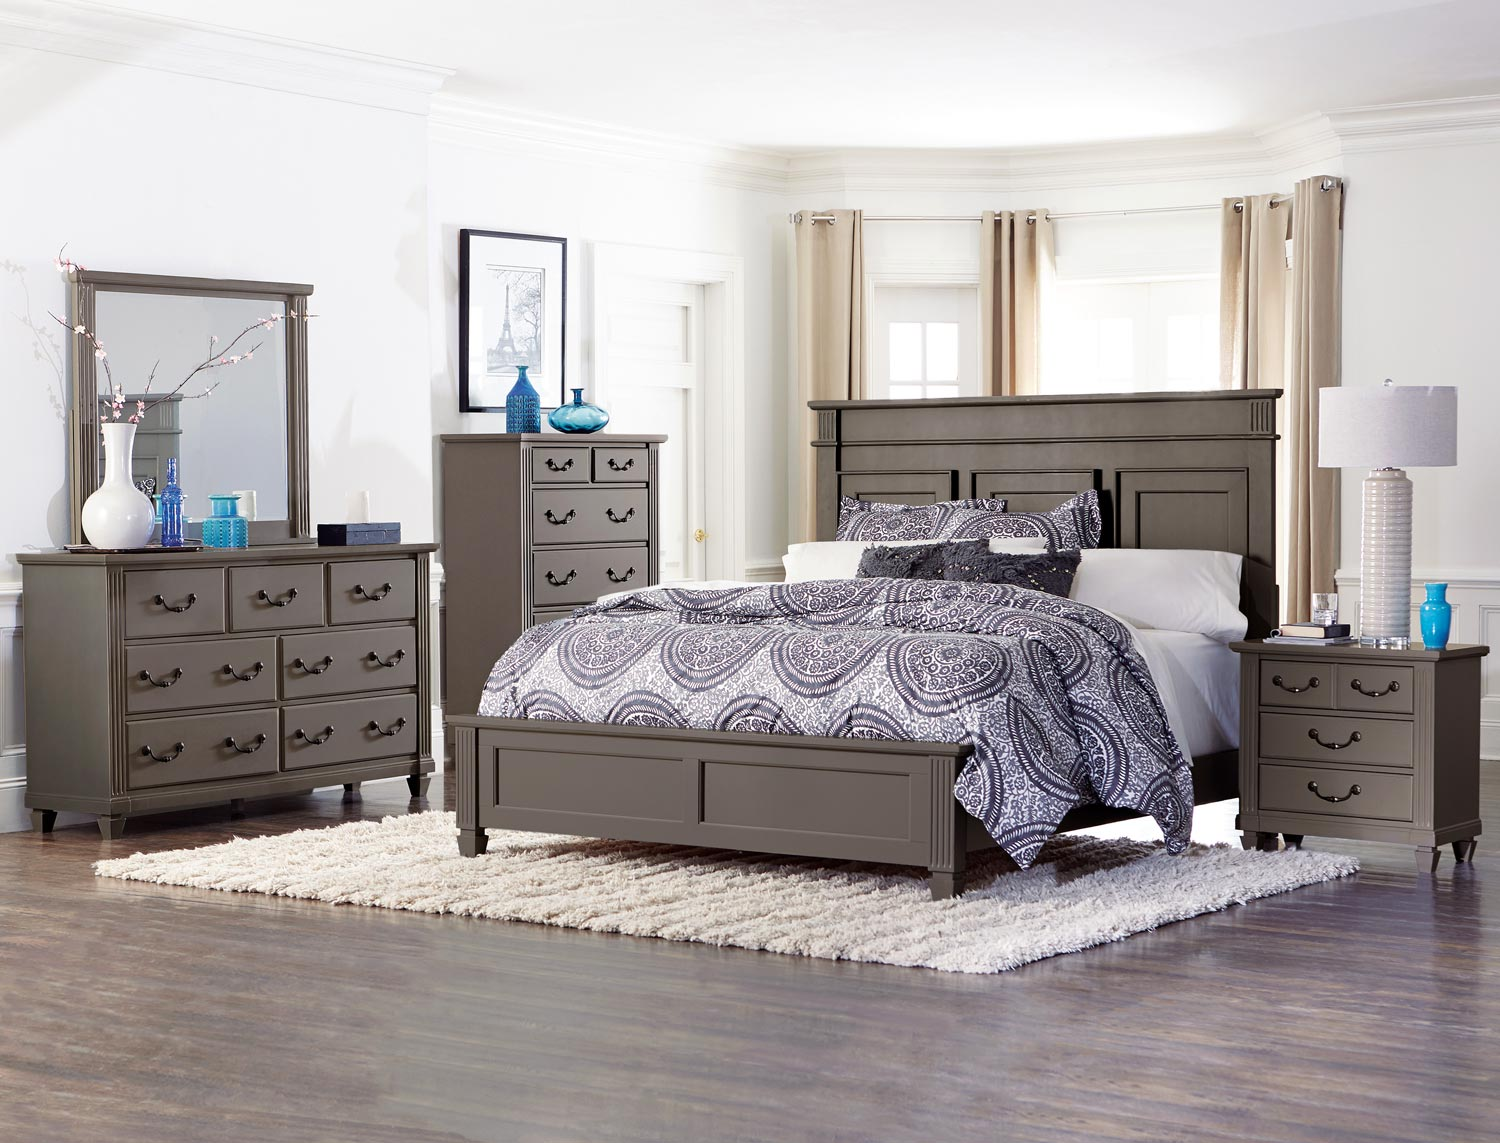 Homelegance Granbury Panel Bedroom Set - Grey Rub